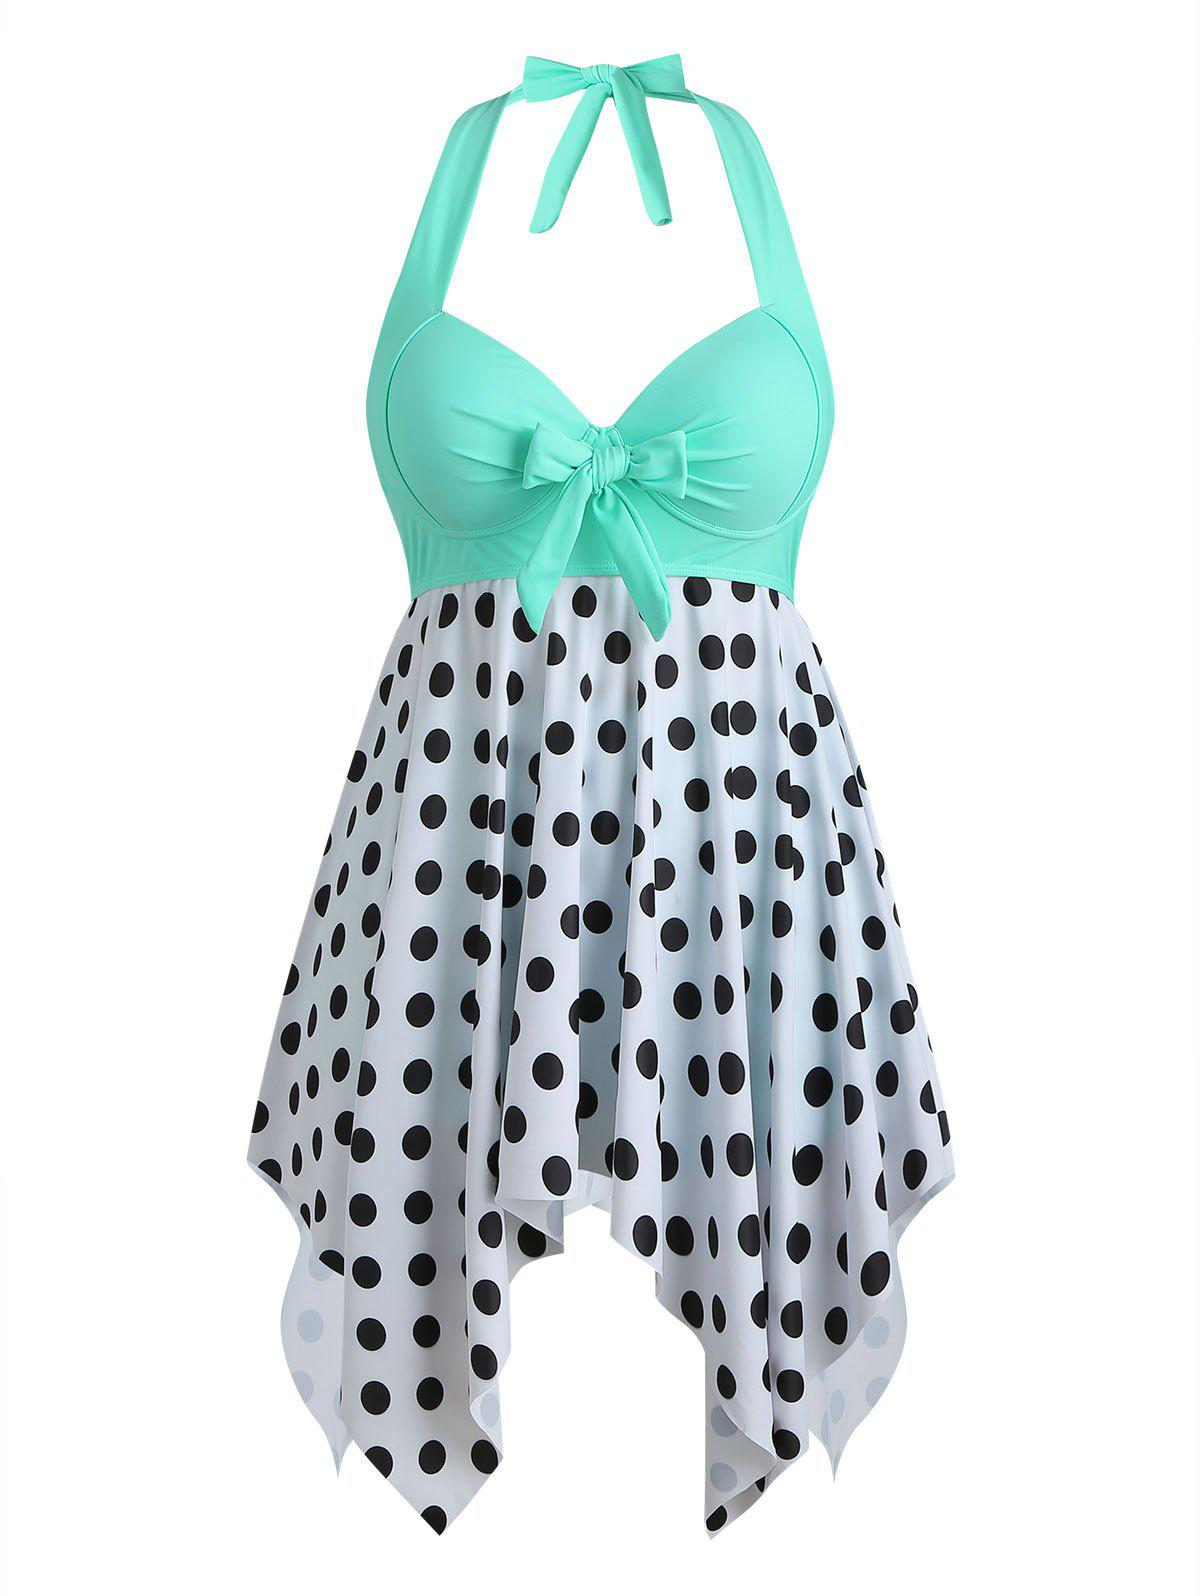 Outfit Bowknot Palm Tree Flamingo Fish Scale Polka Dot Plus Size Tankini Set